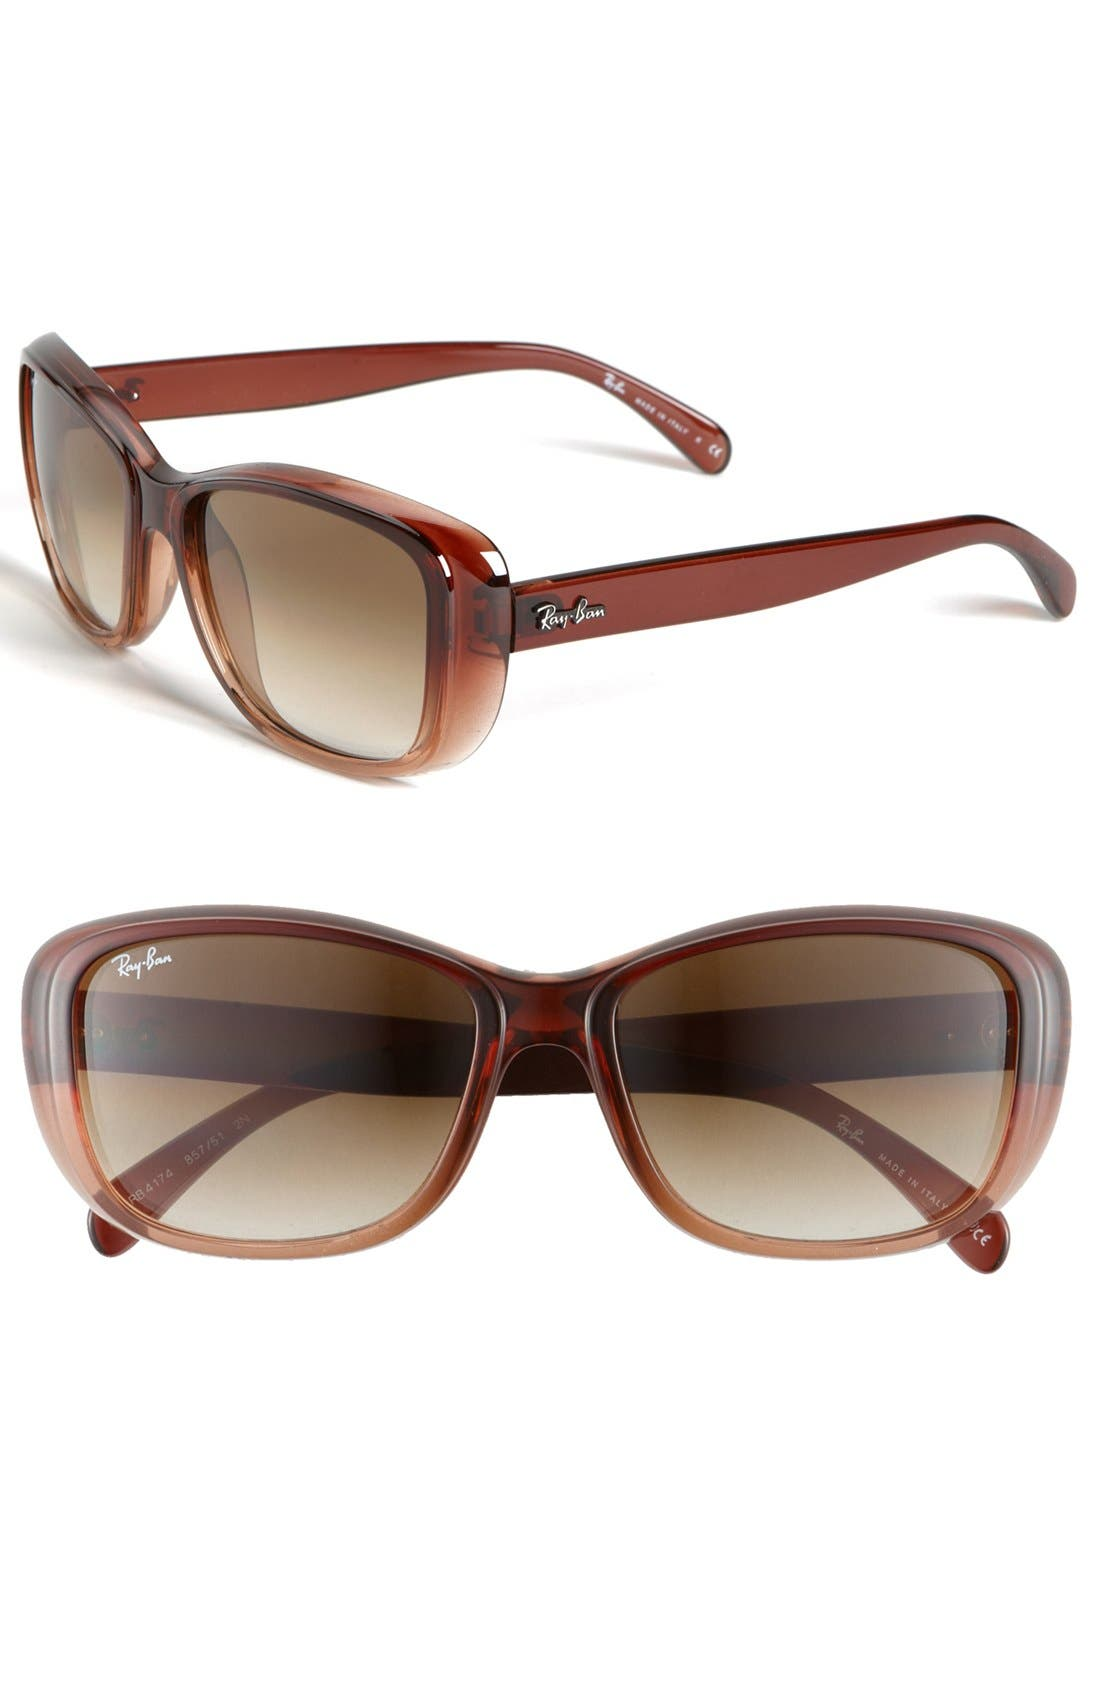 Alternate Image 1 Selected - Ray-Ban 'Classic' 56mm Sunglasses